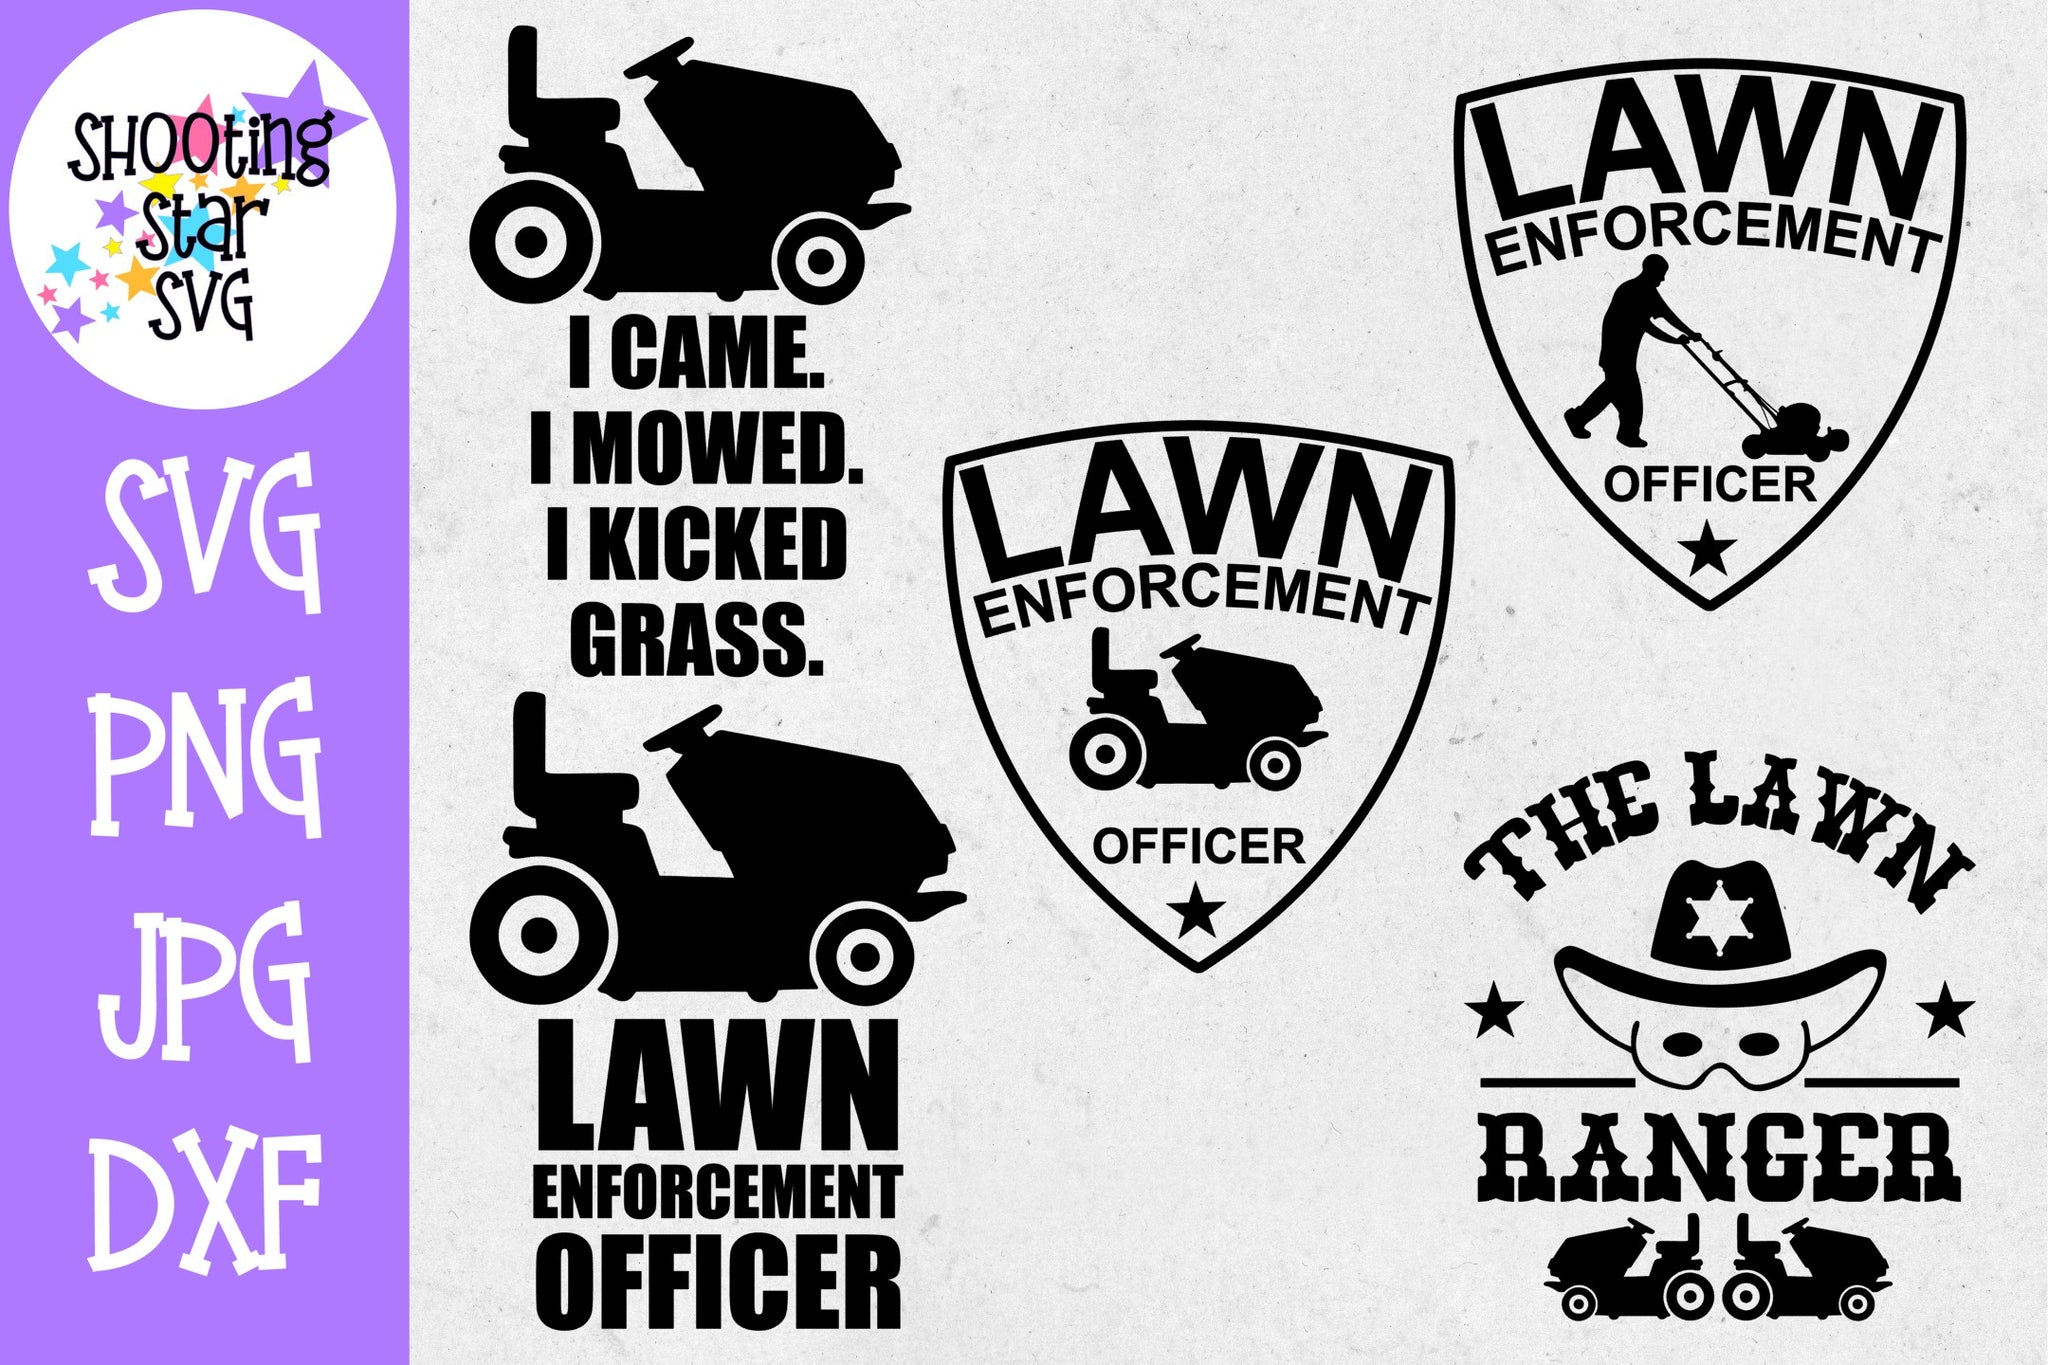 Lawn Enforcement Officer Bundle - The Lawn Ranger - I came I mowed I kicked Grass - Father's Day SVG